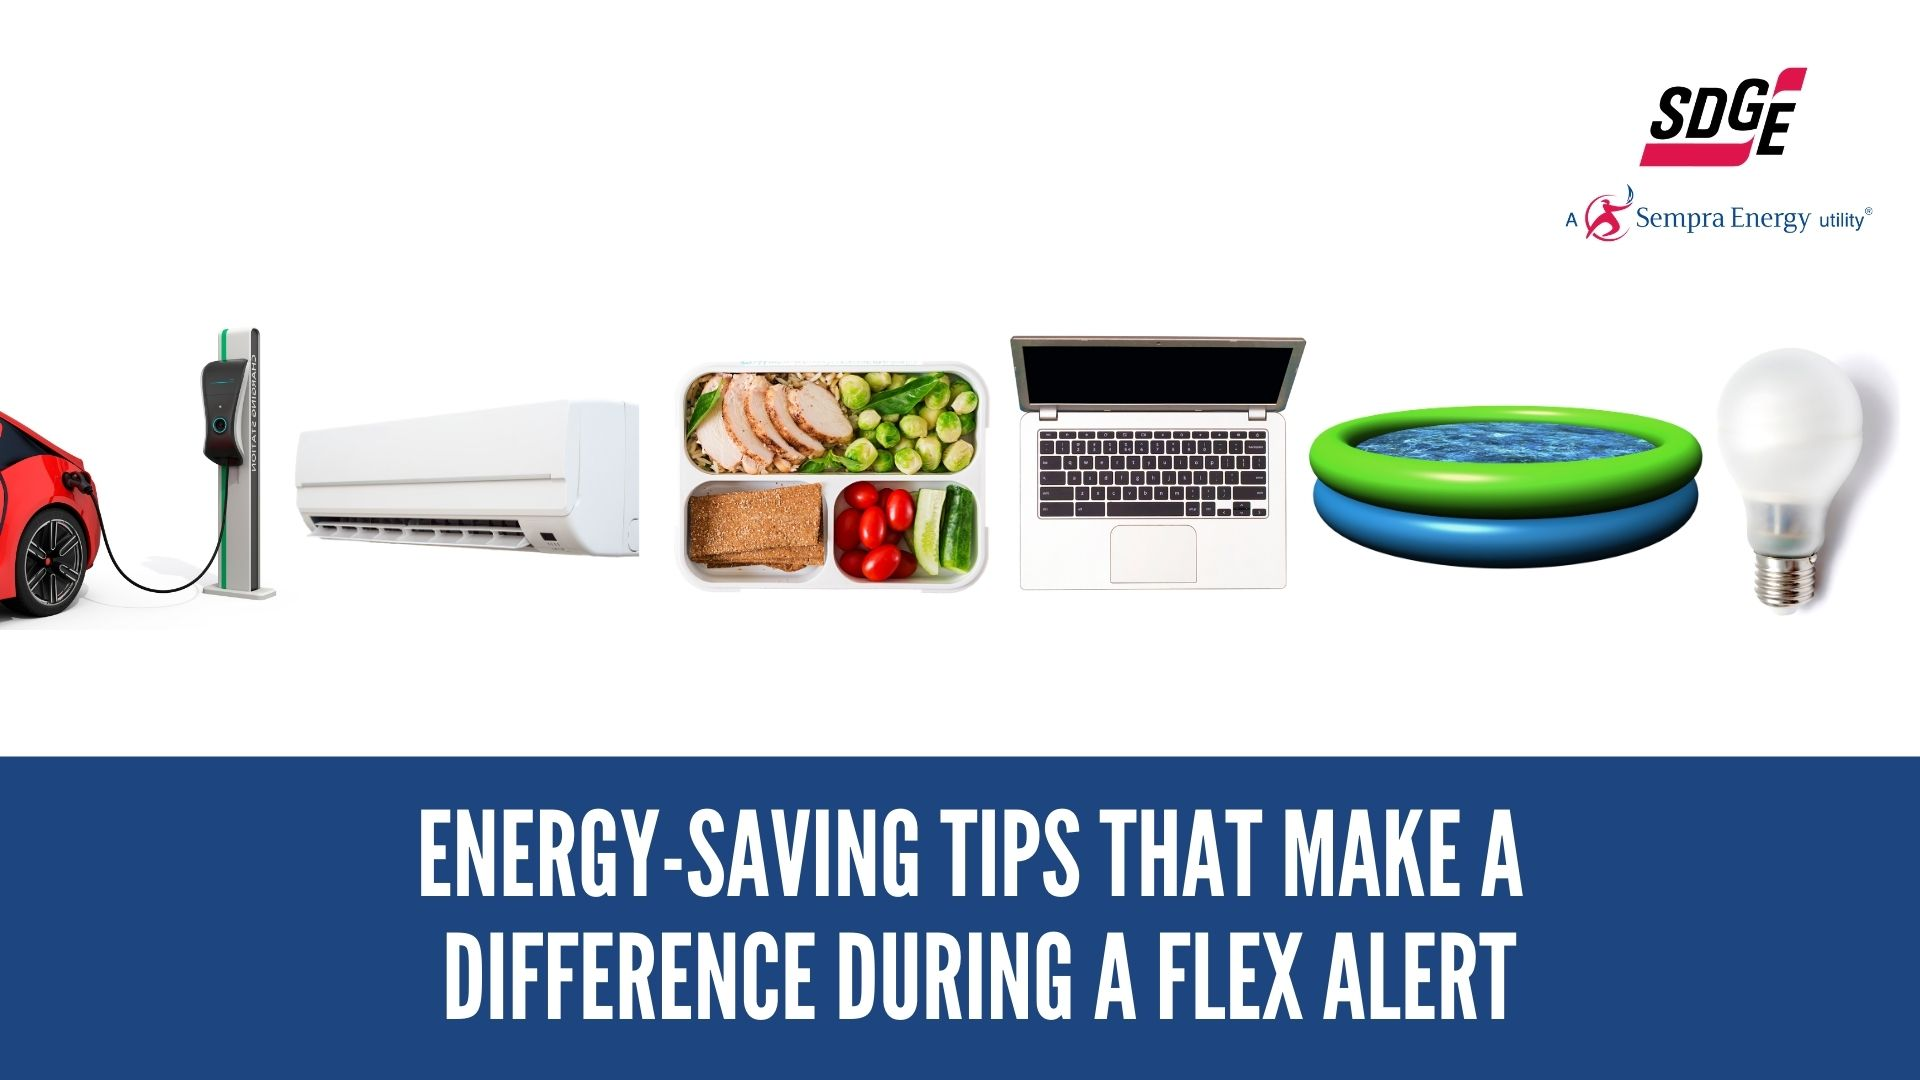 Oct. 15: Energy-Saving Tips That Make a Difference During A Flex Alert